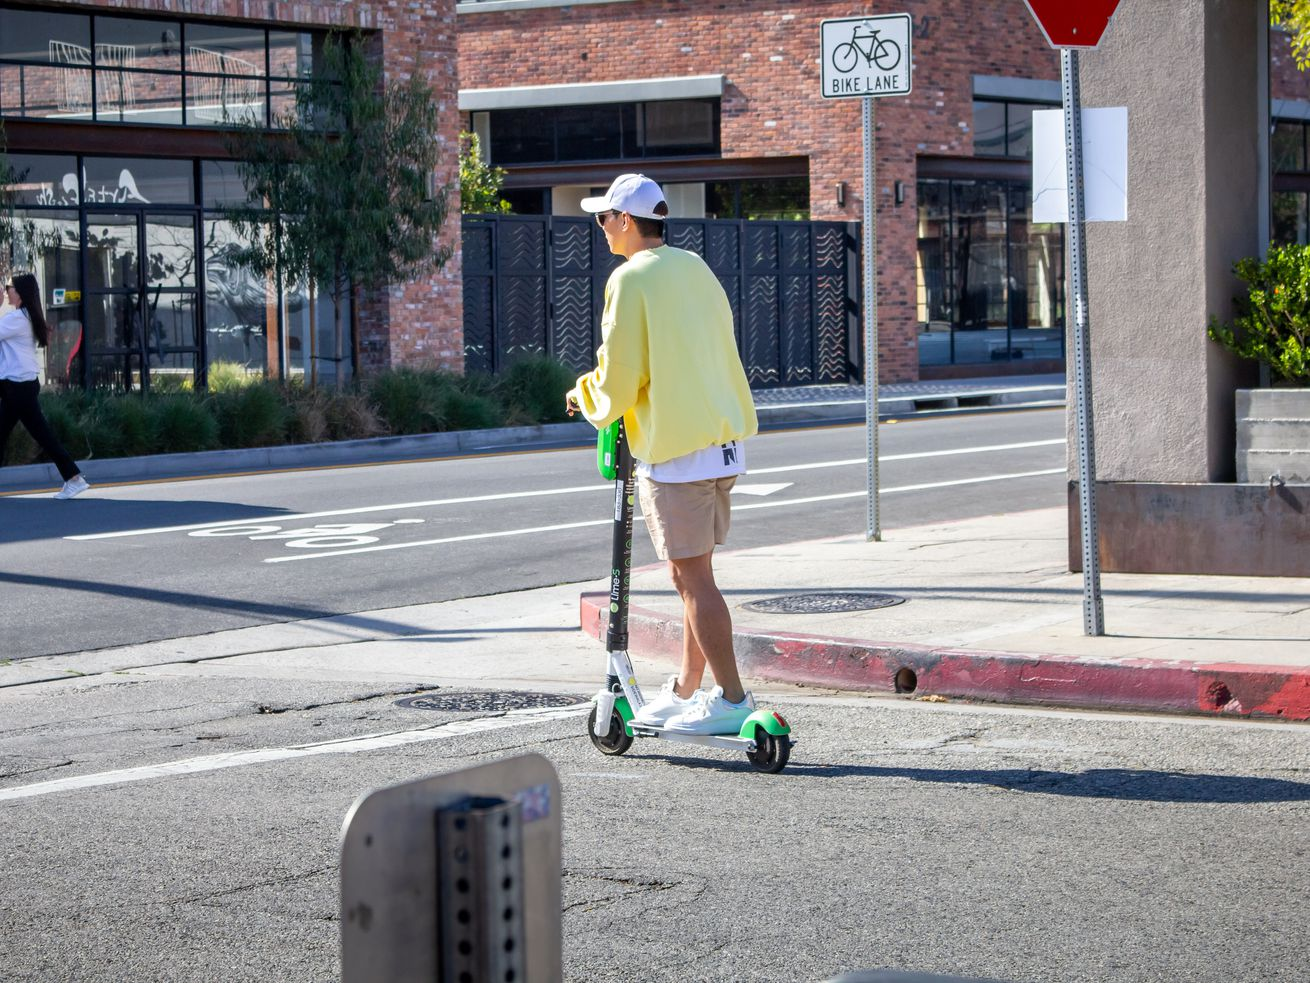 A pilot program regulating scooters in the city of Los Angeles began in March.